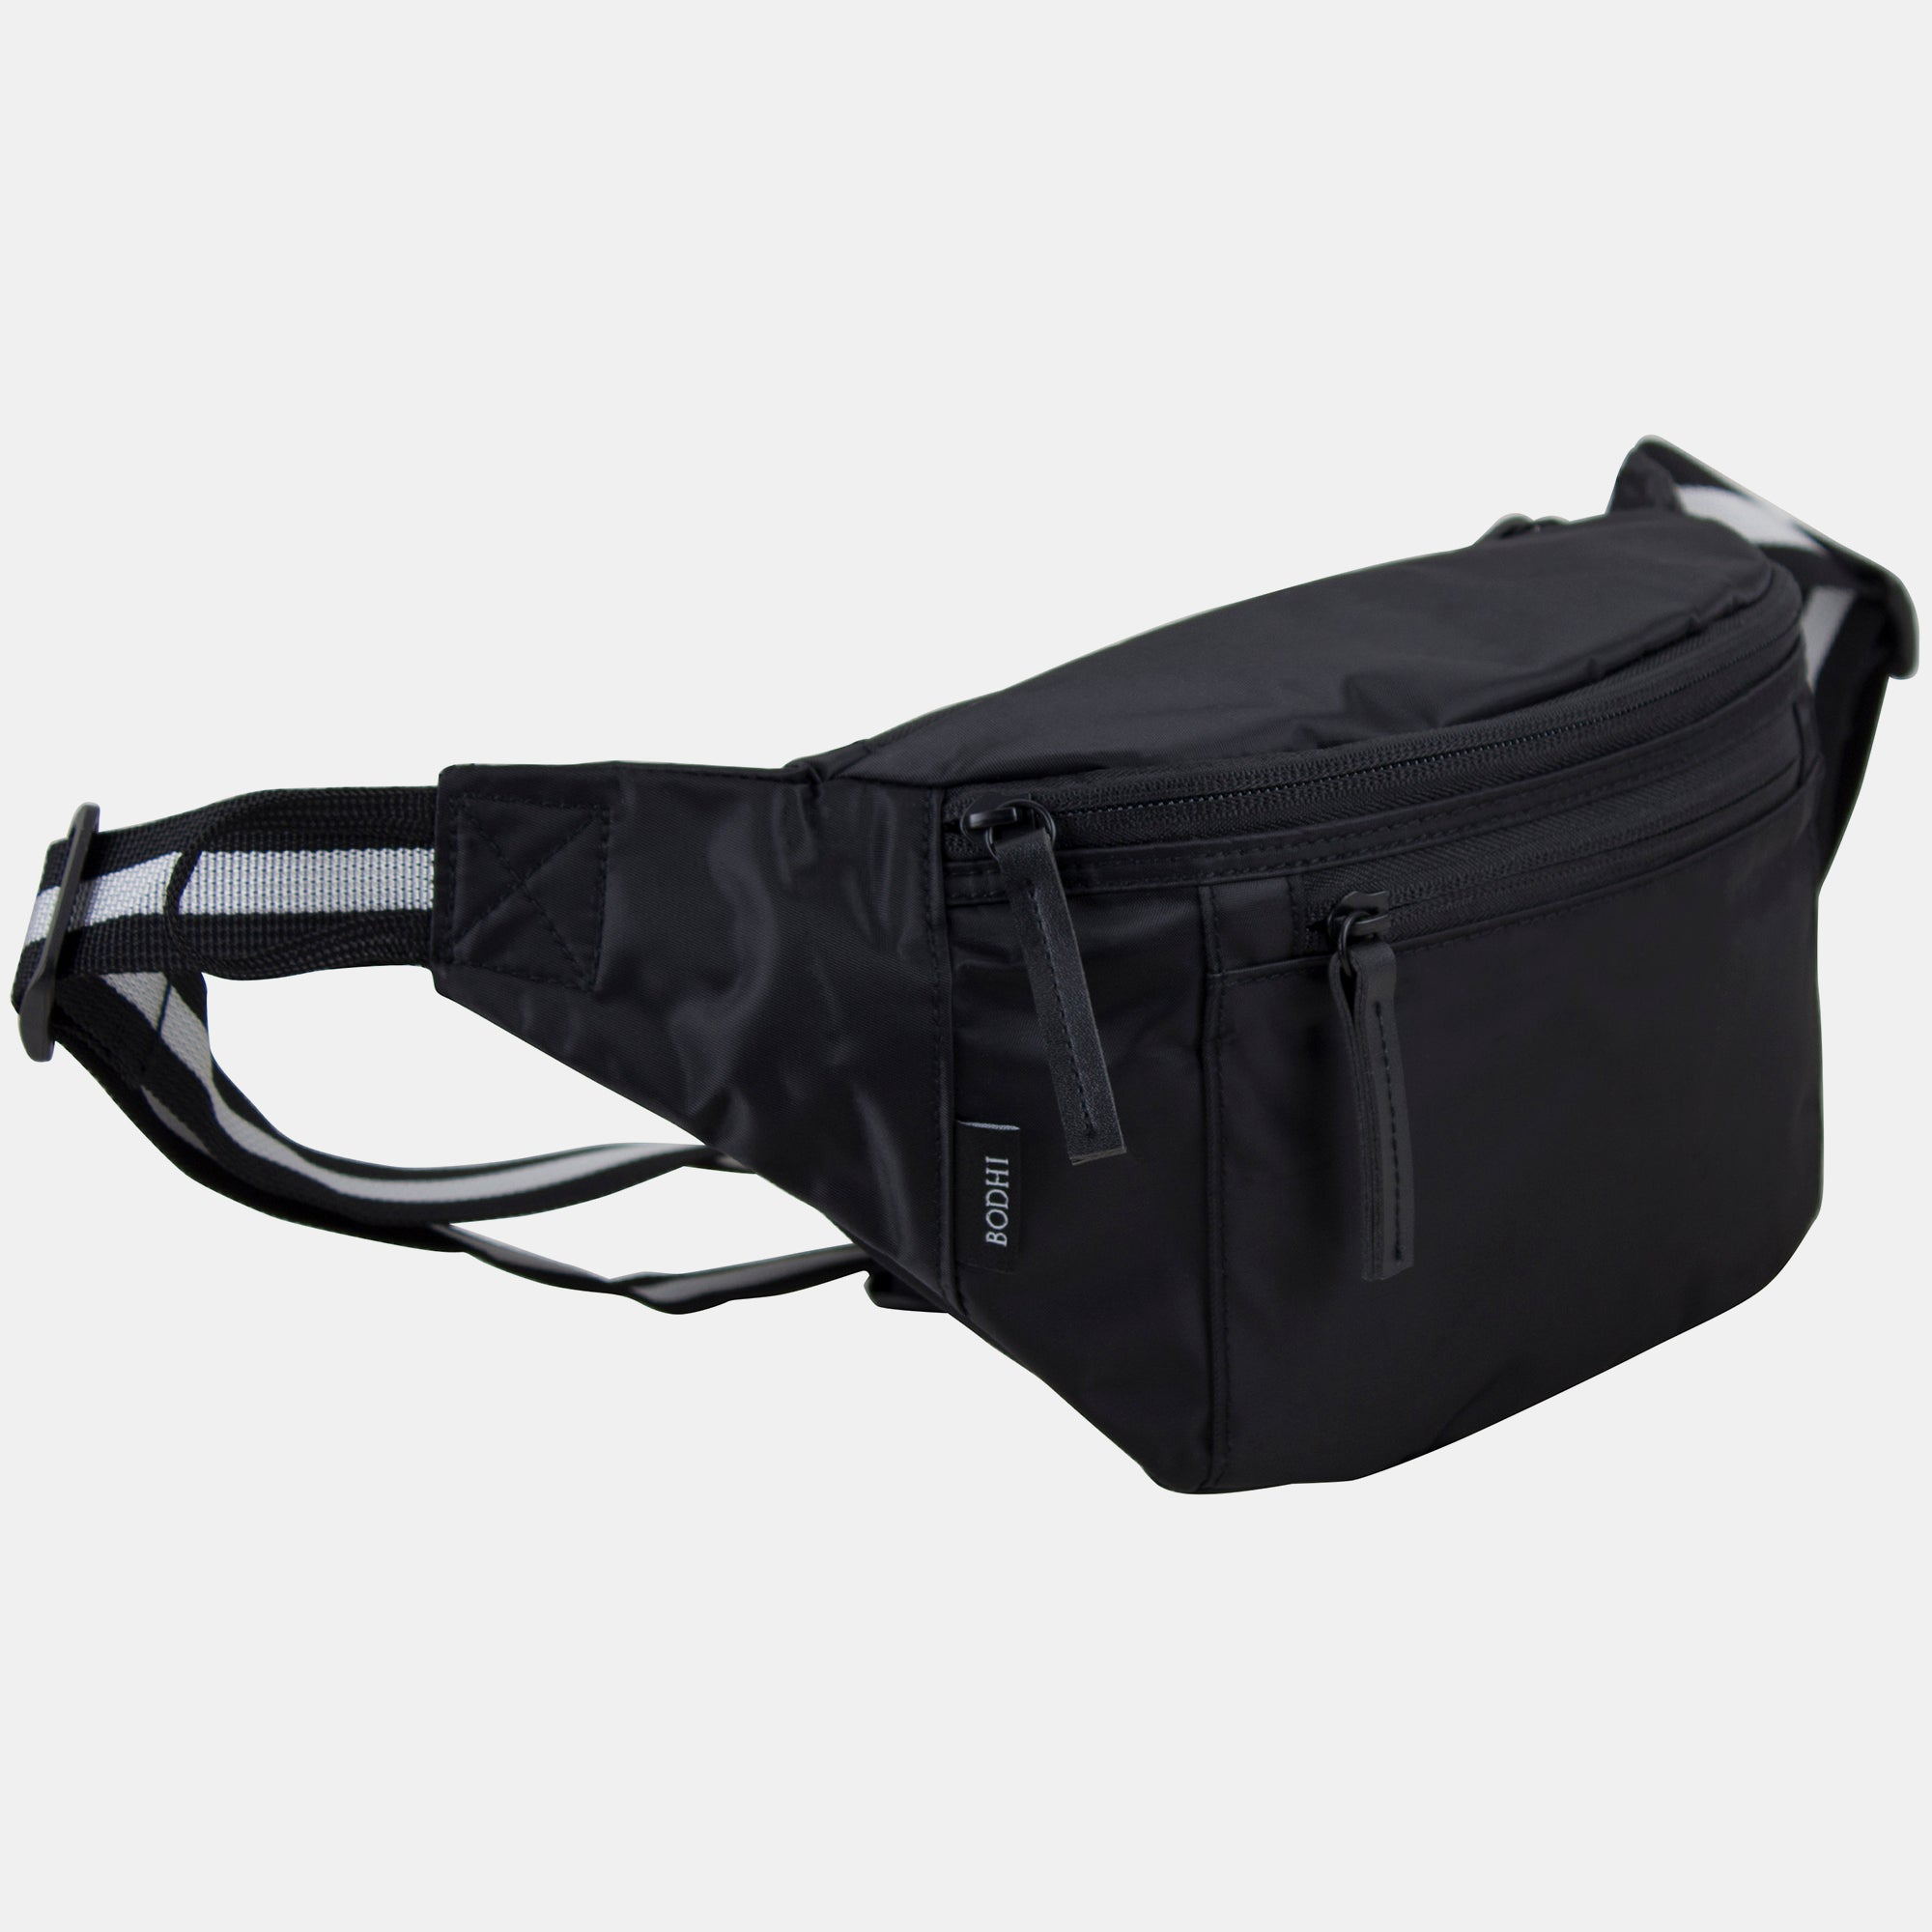 BODHI Athleisure Belt Bag